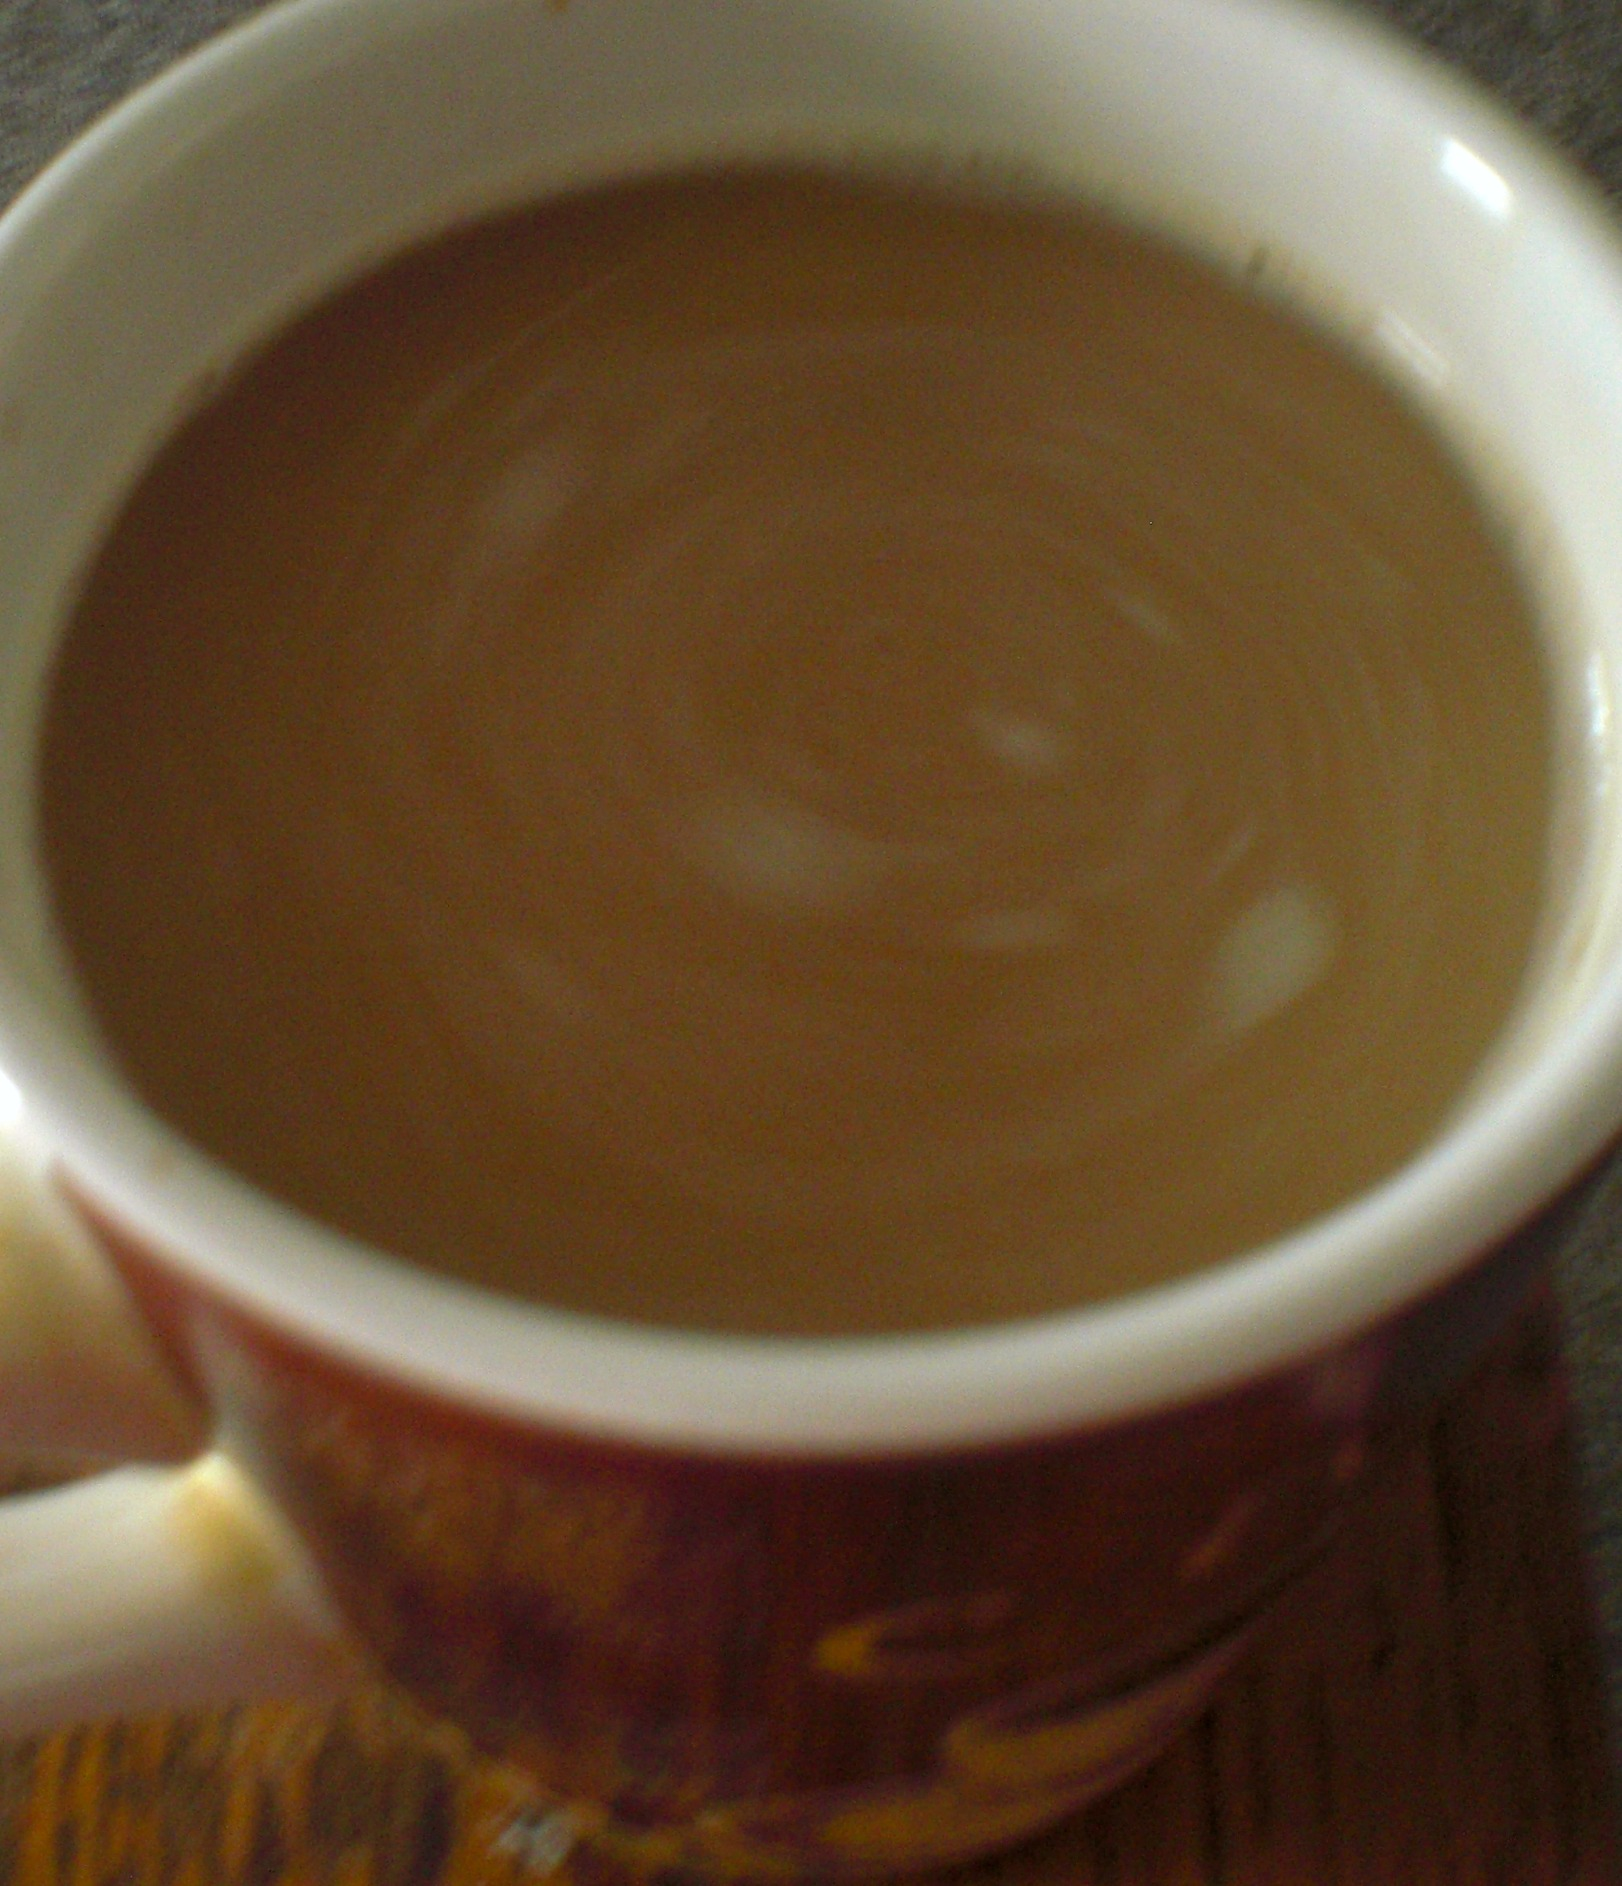 how to stop feeling sick from coffee